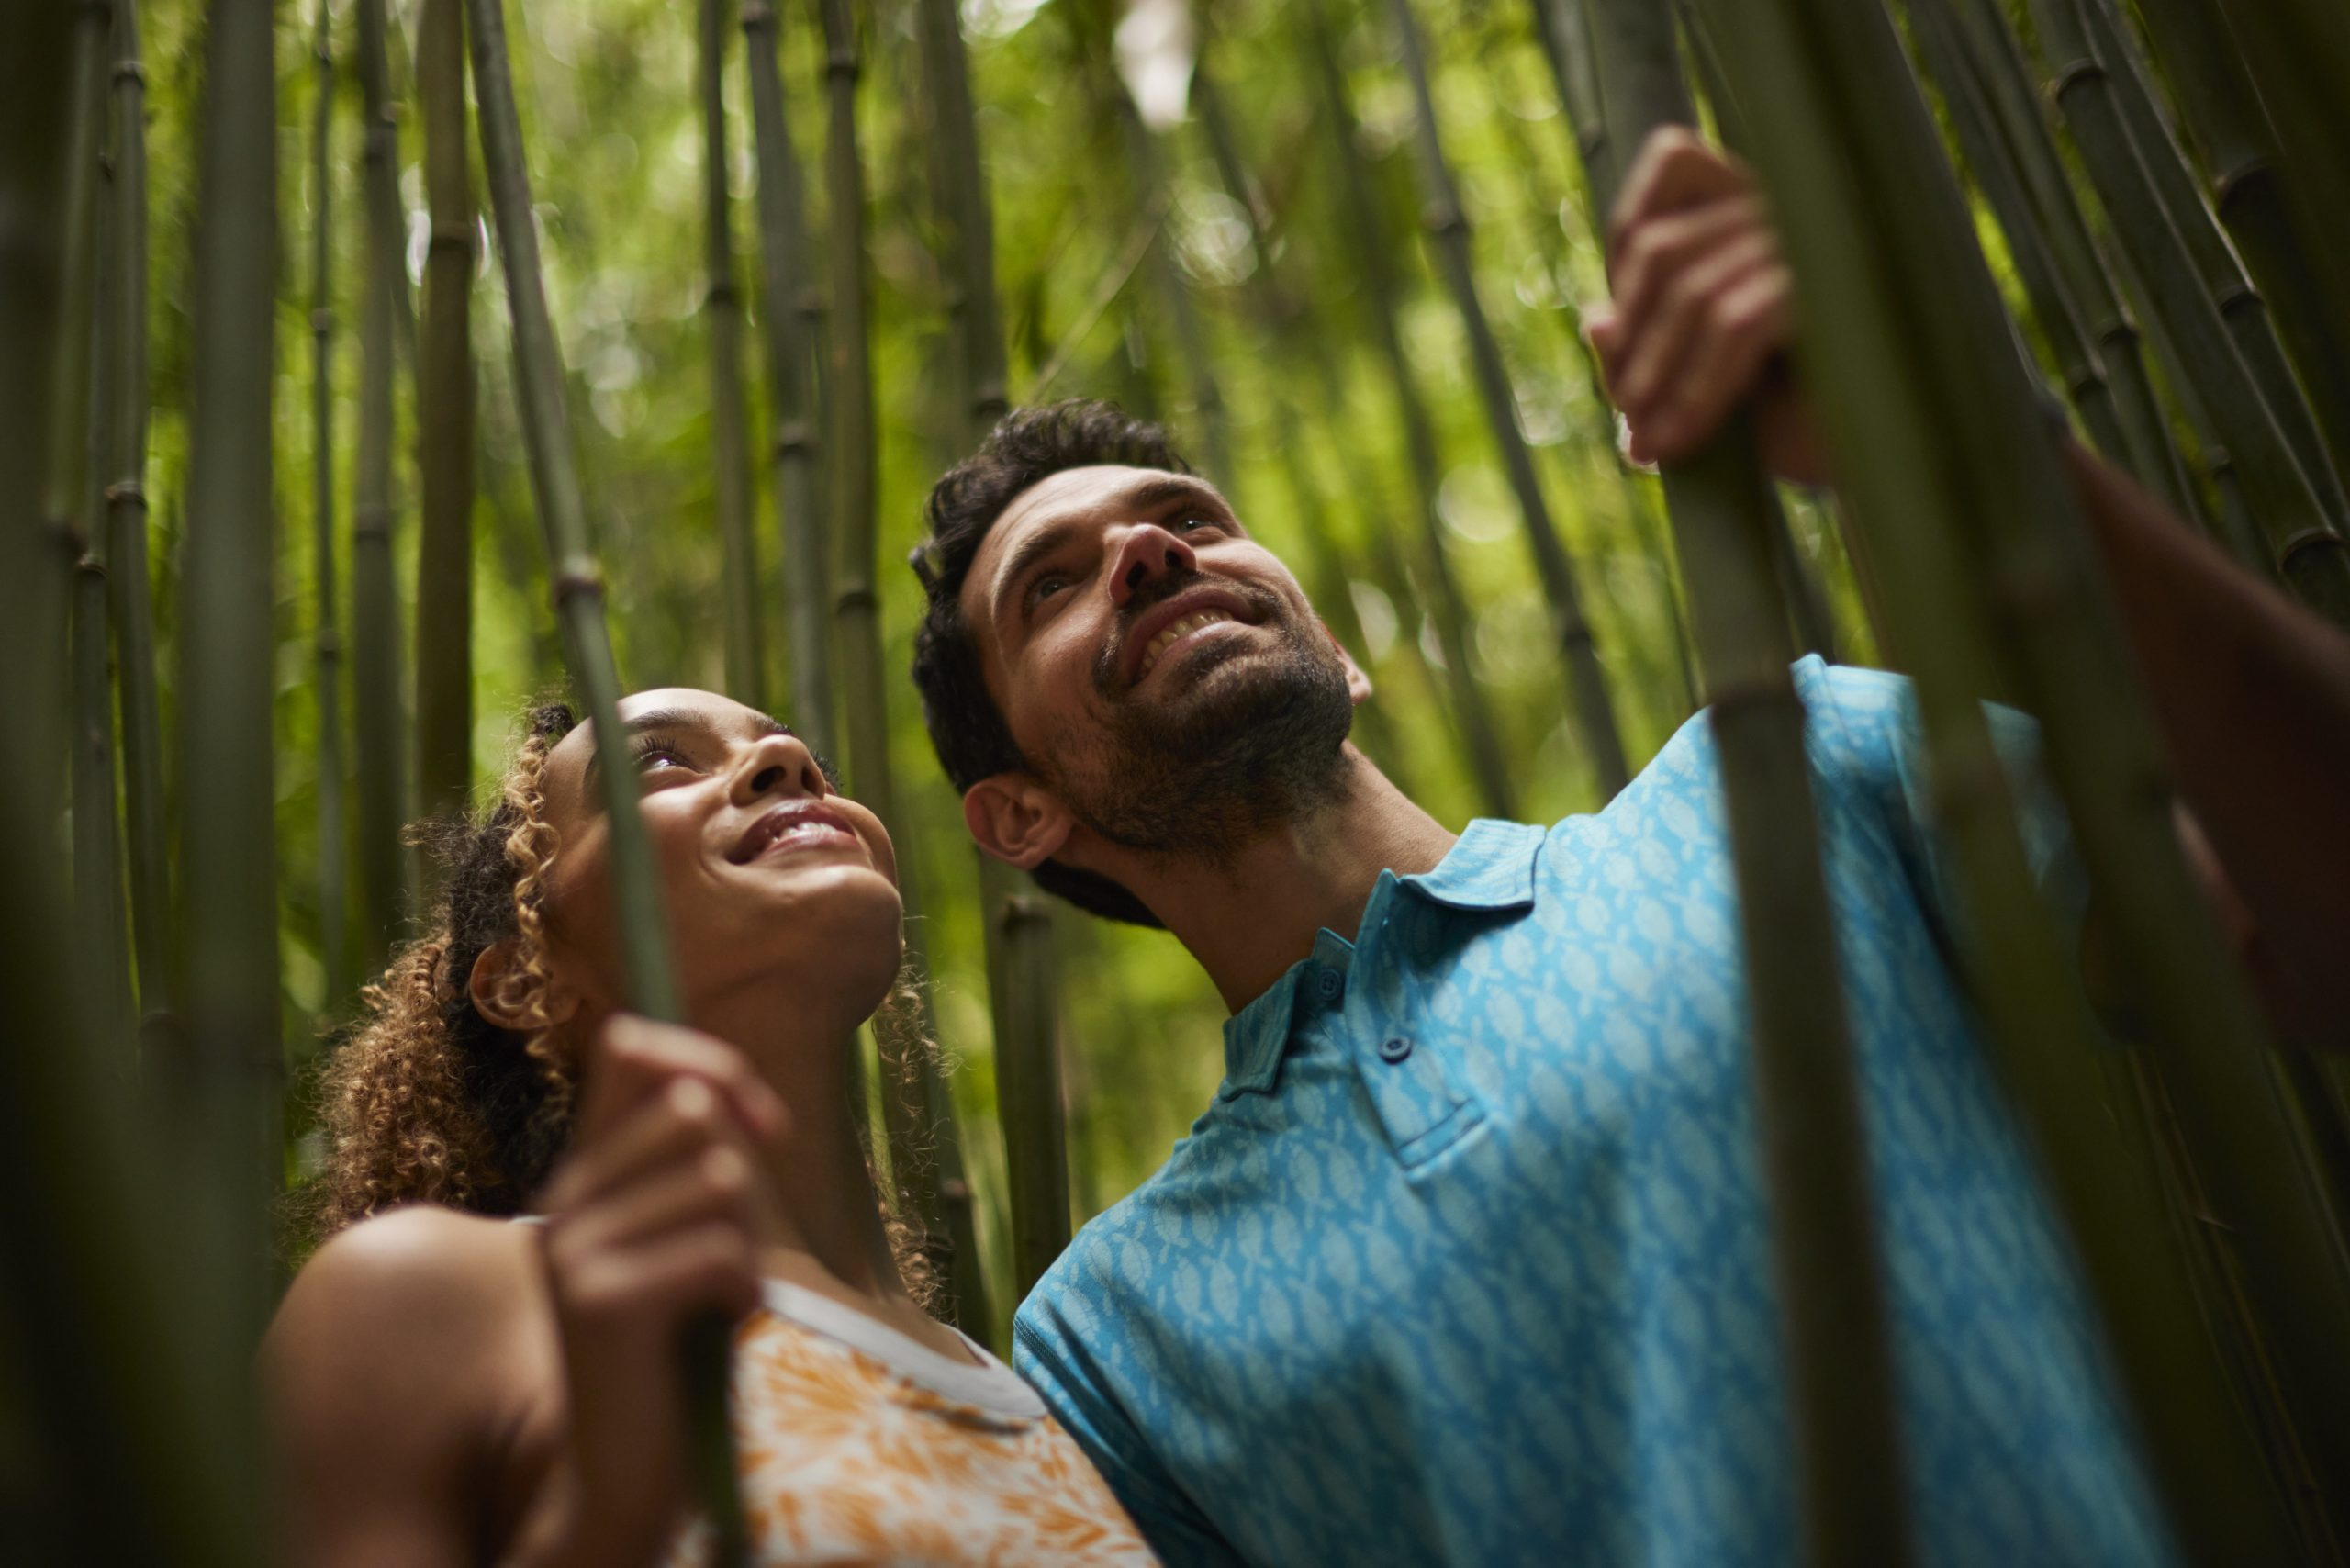 men and women in bamboo